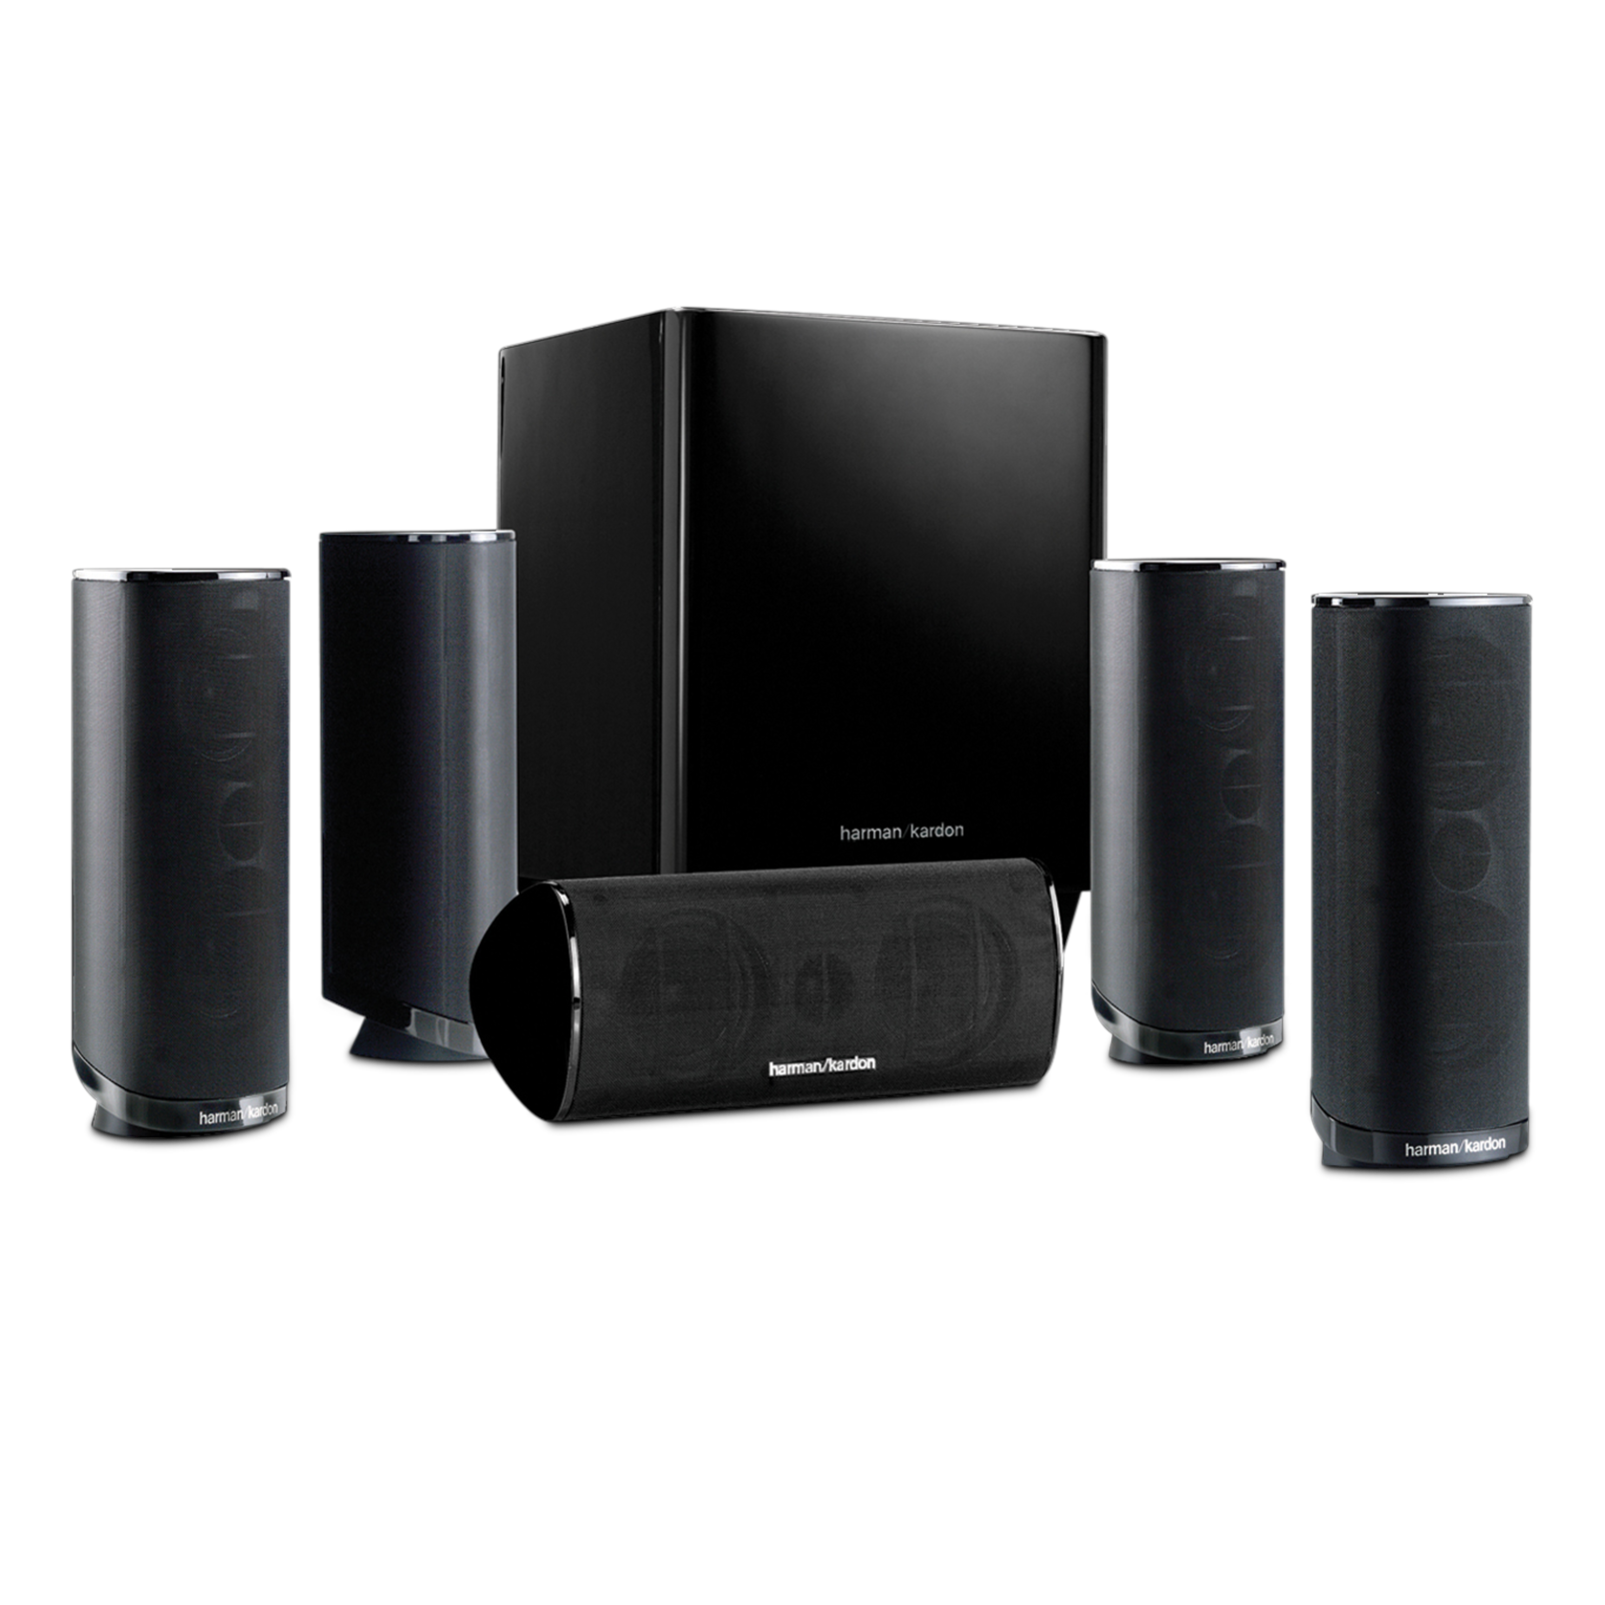 harman-kardon-hkts-16bq-5-1-channel-home-theater-speaker-package-speakers-under-500